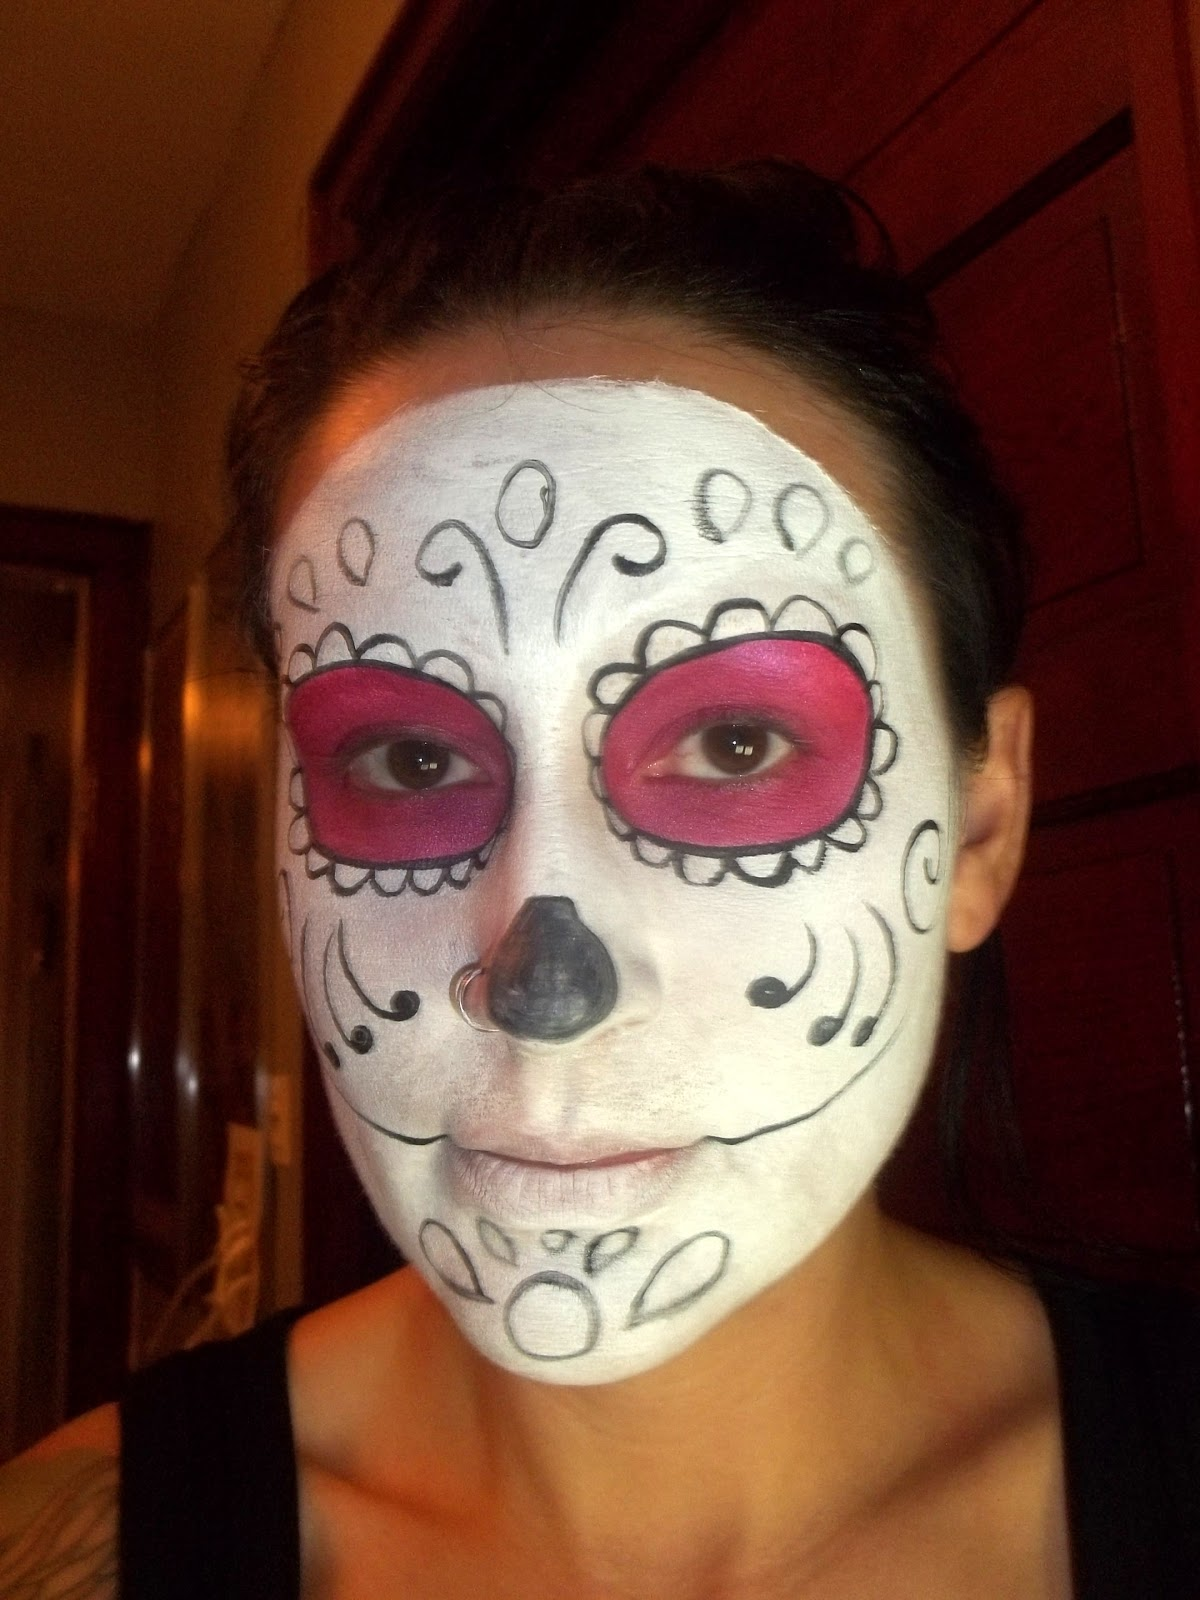 Bethezda Preoccupations Sugar Skull Makeup Tutorial